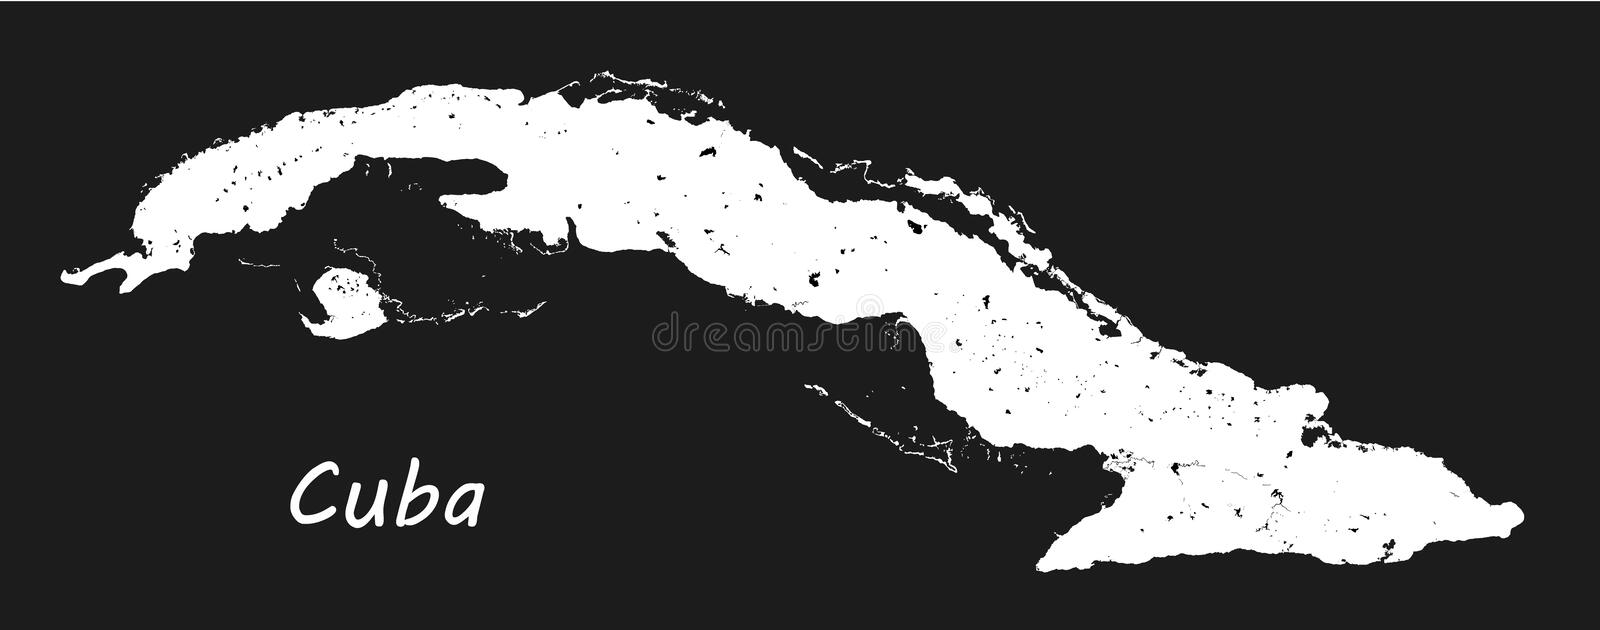 Cuba. Vector black and white map. Geographic map detailed outlines with designation of lakes and rivers. vector illustration